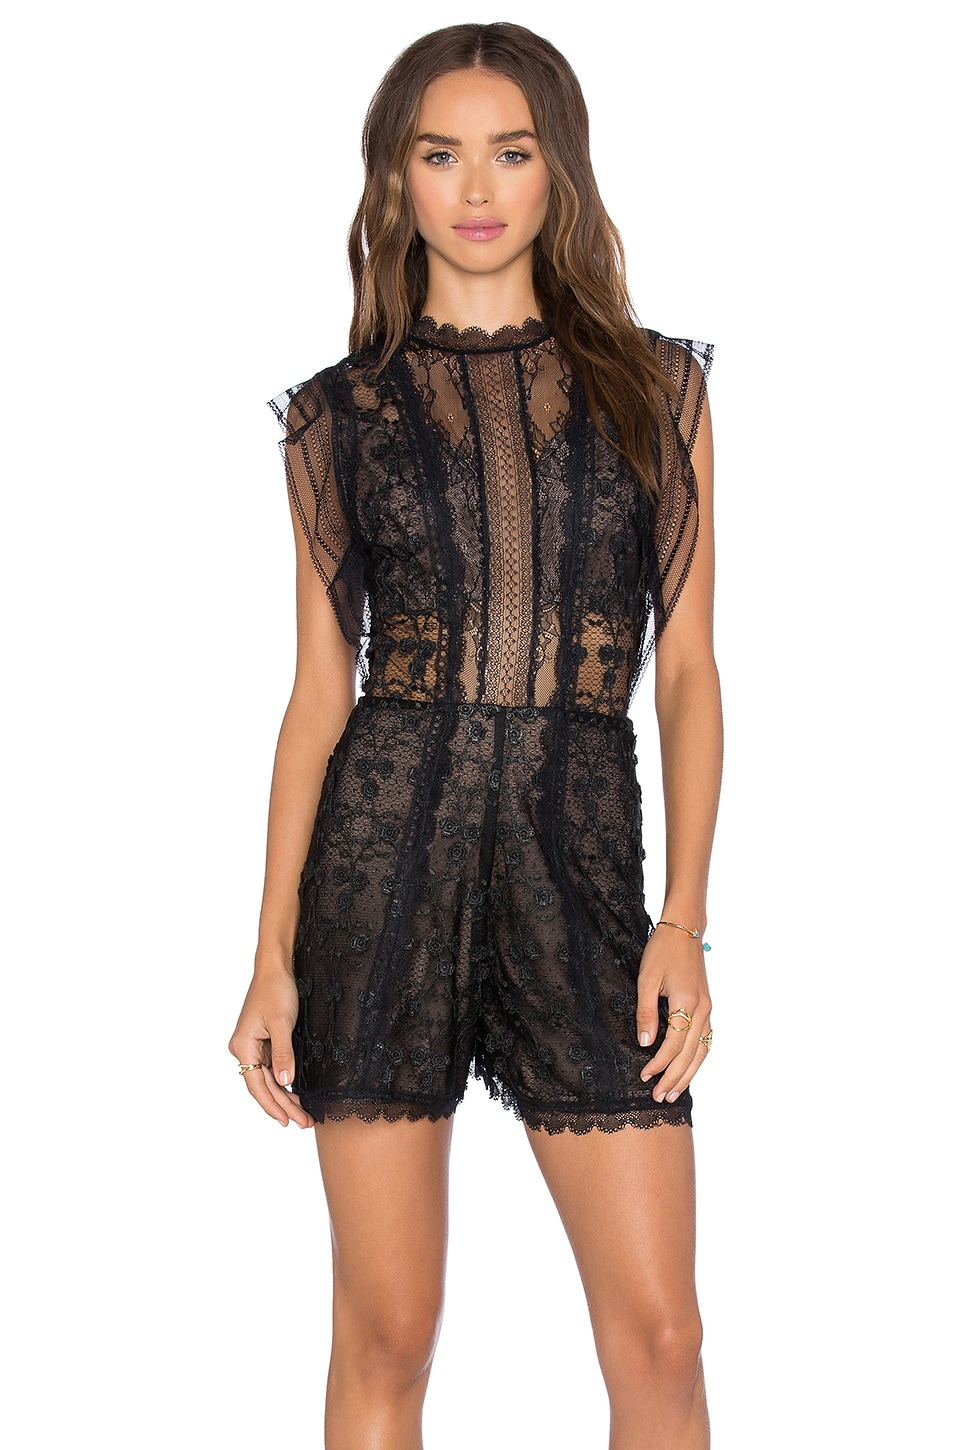 Alexis Lowe Romper in Black Flower Embroidery